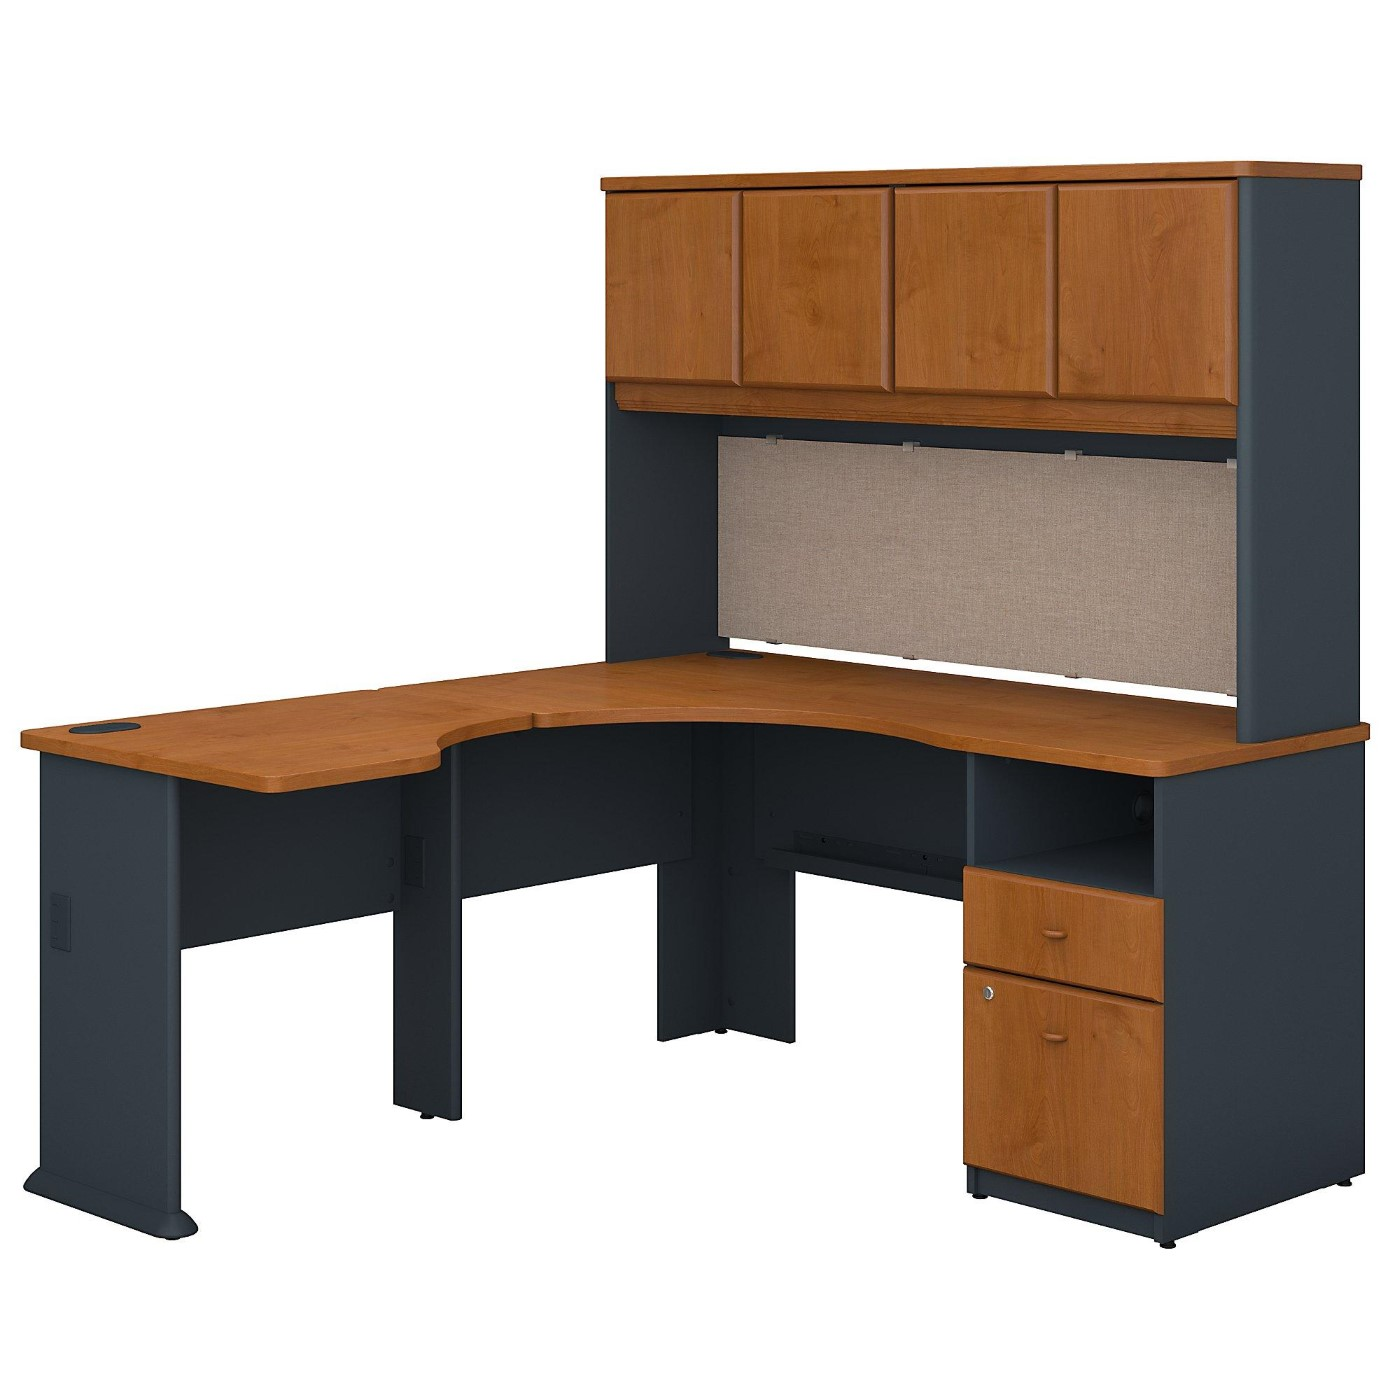 BUSH BUSINESS FURNITURE SERIES A 60W X 65D L SHAPED DESK WITH HUTCH AND 2 DRAWER PEDESTAL. FREE SHIPPING</font></b></font></b>&#x1F384<font color=red><b>ERGONOMICHOME HOLIDAY SALE - ENDS DEC. 17, 2019</b></font>&#x1F384